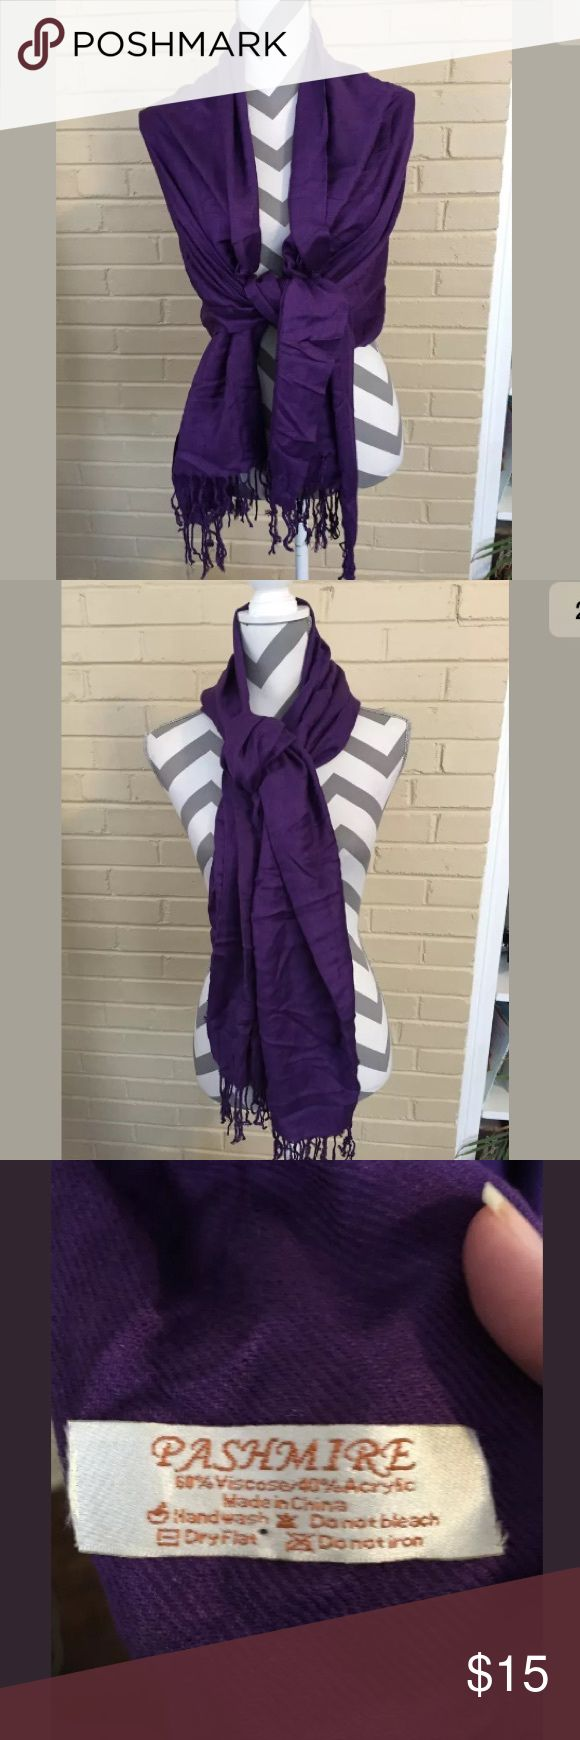 Purple Pashmine Scarf or Wrap with Fringe Large Lovely purple pashmine wrap or scarf perfect for winter weather! Can be worn multiple ways. Gorgeous piece!   We love to bundle! Pashmine Accessories Scarves & Wraps